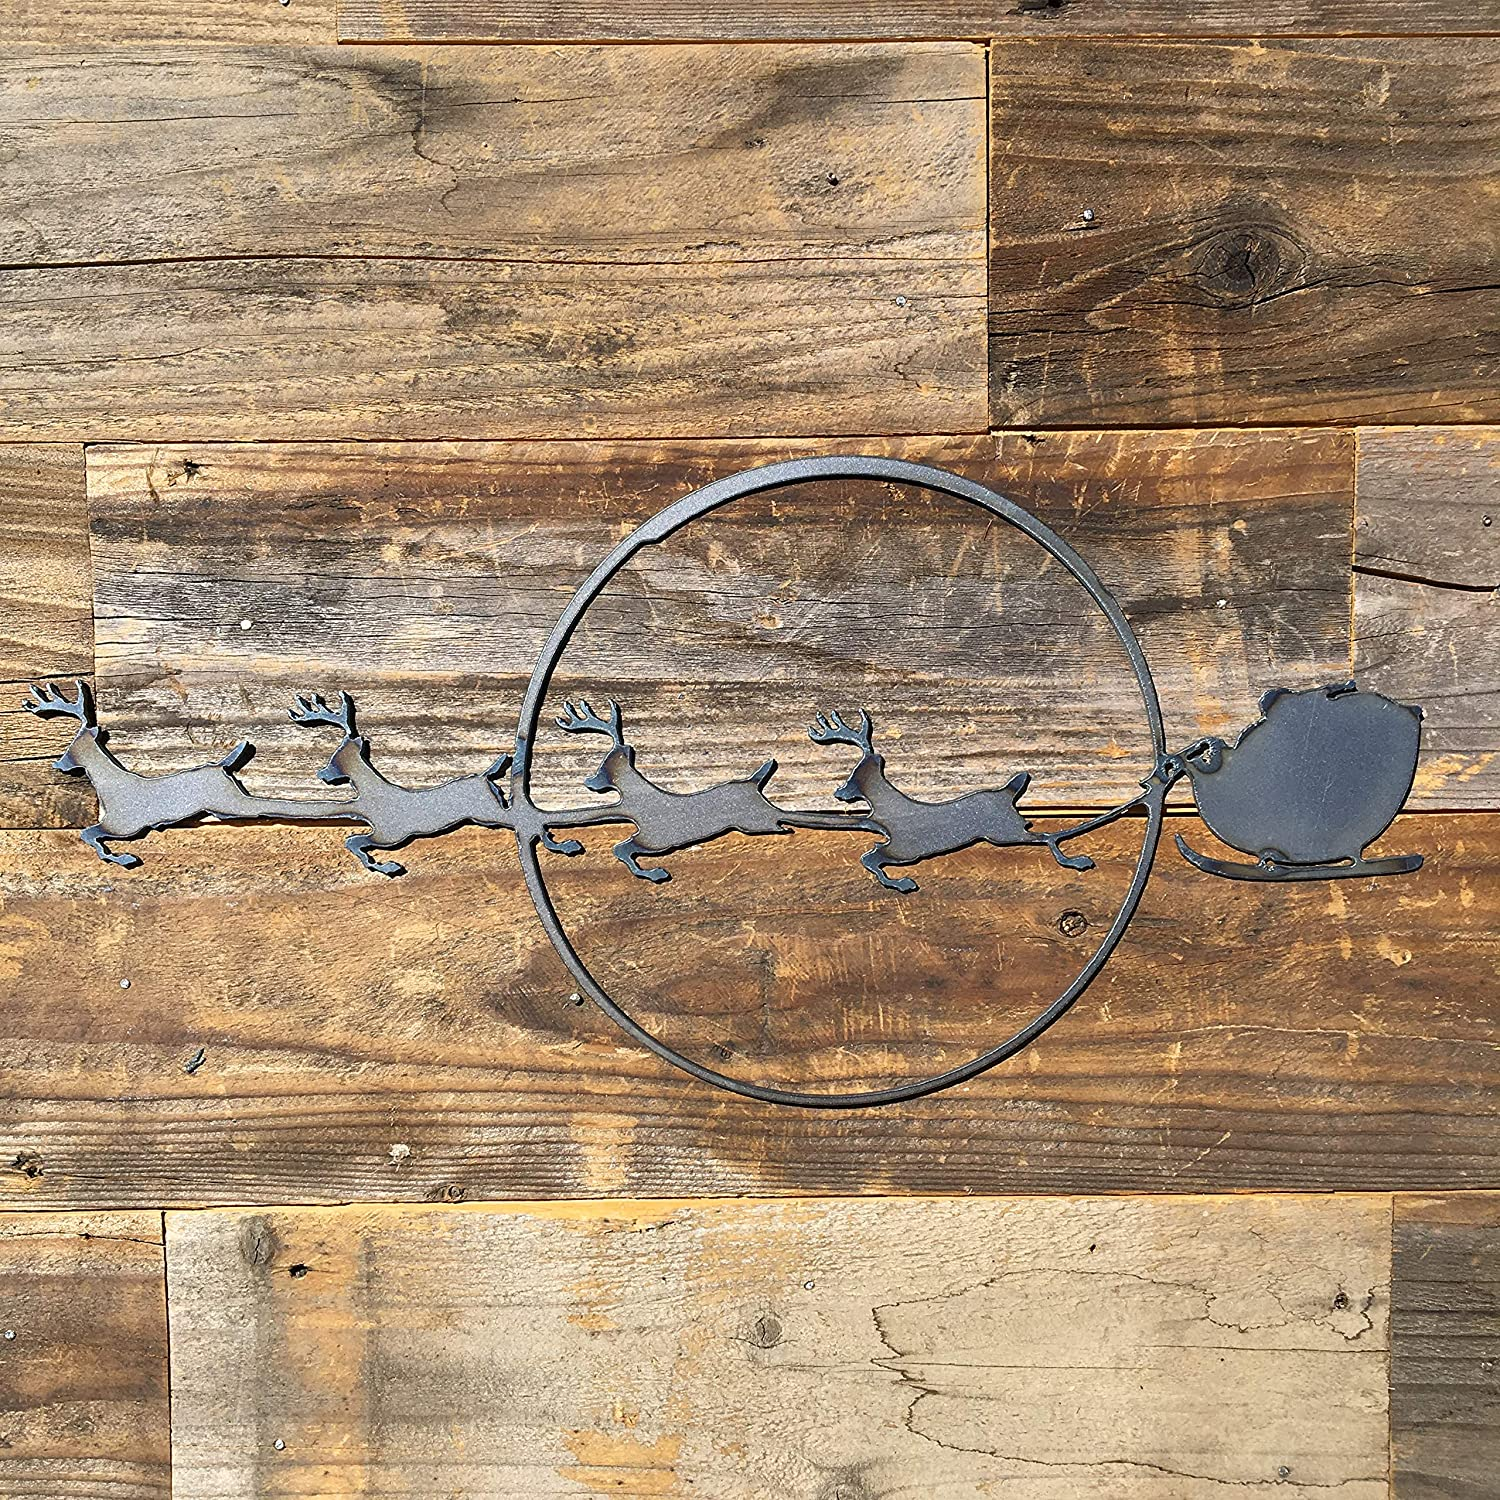 The Heritage Forge Custom Made Metal Family Wall Decor, Farmhouse Decor for The Home Perfect for Kitchen, Living Room, Bedroom, and Outdoors - Santa with Sleigh 18 x 8